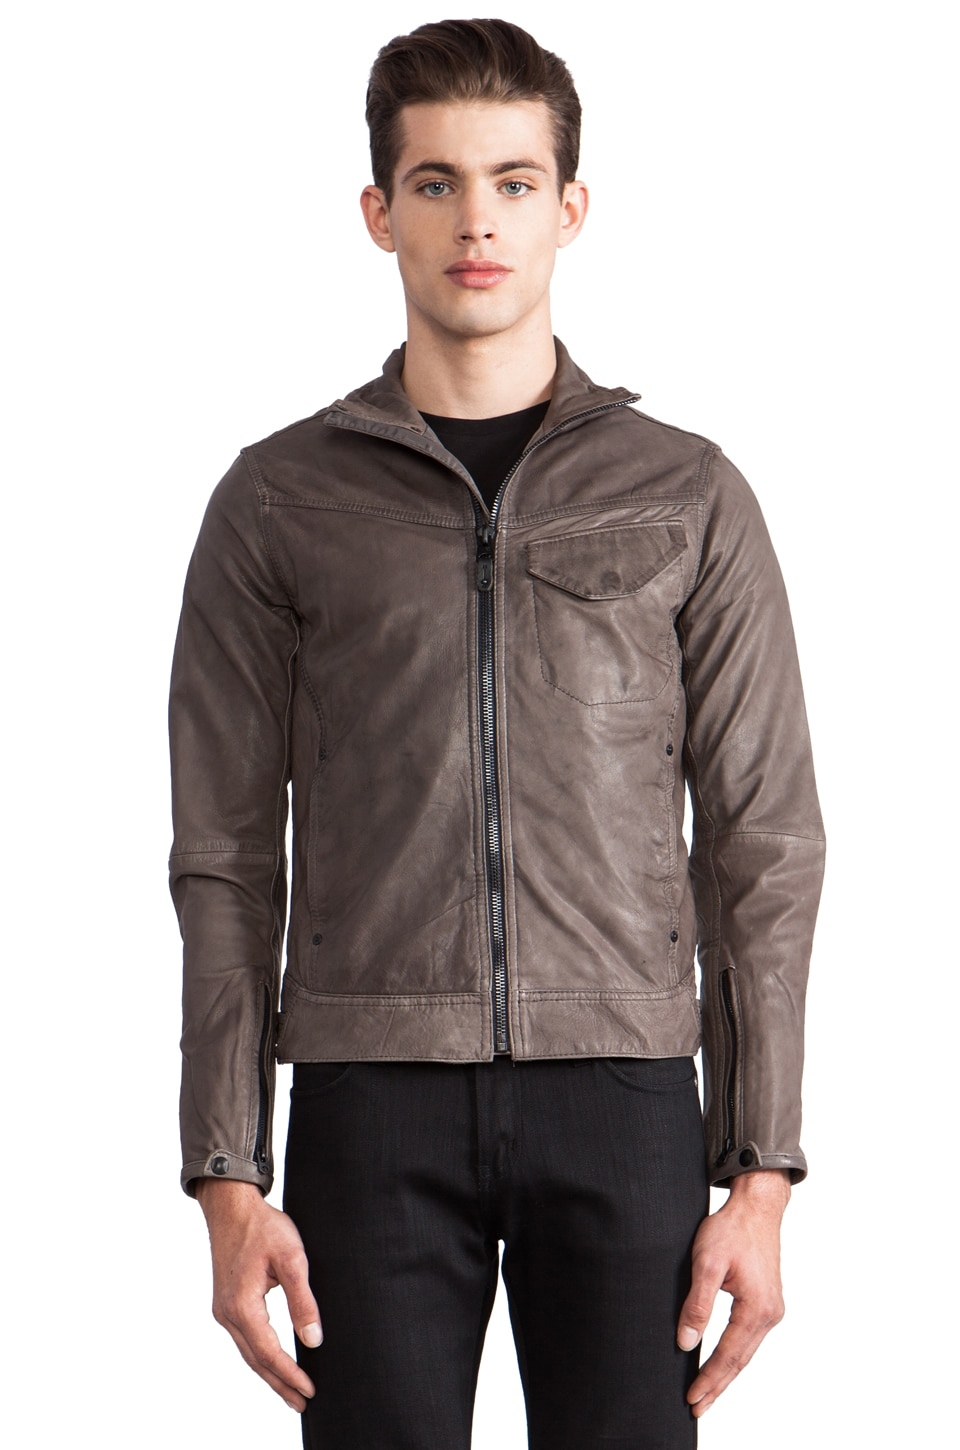 G-Star JSF Leather Jacket in Castor  e85f7012416